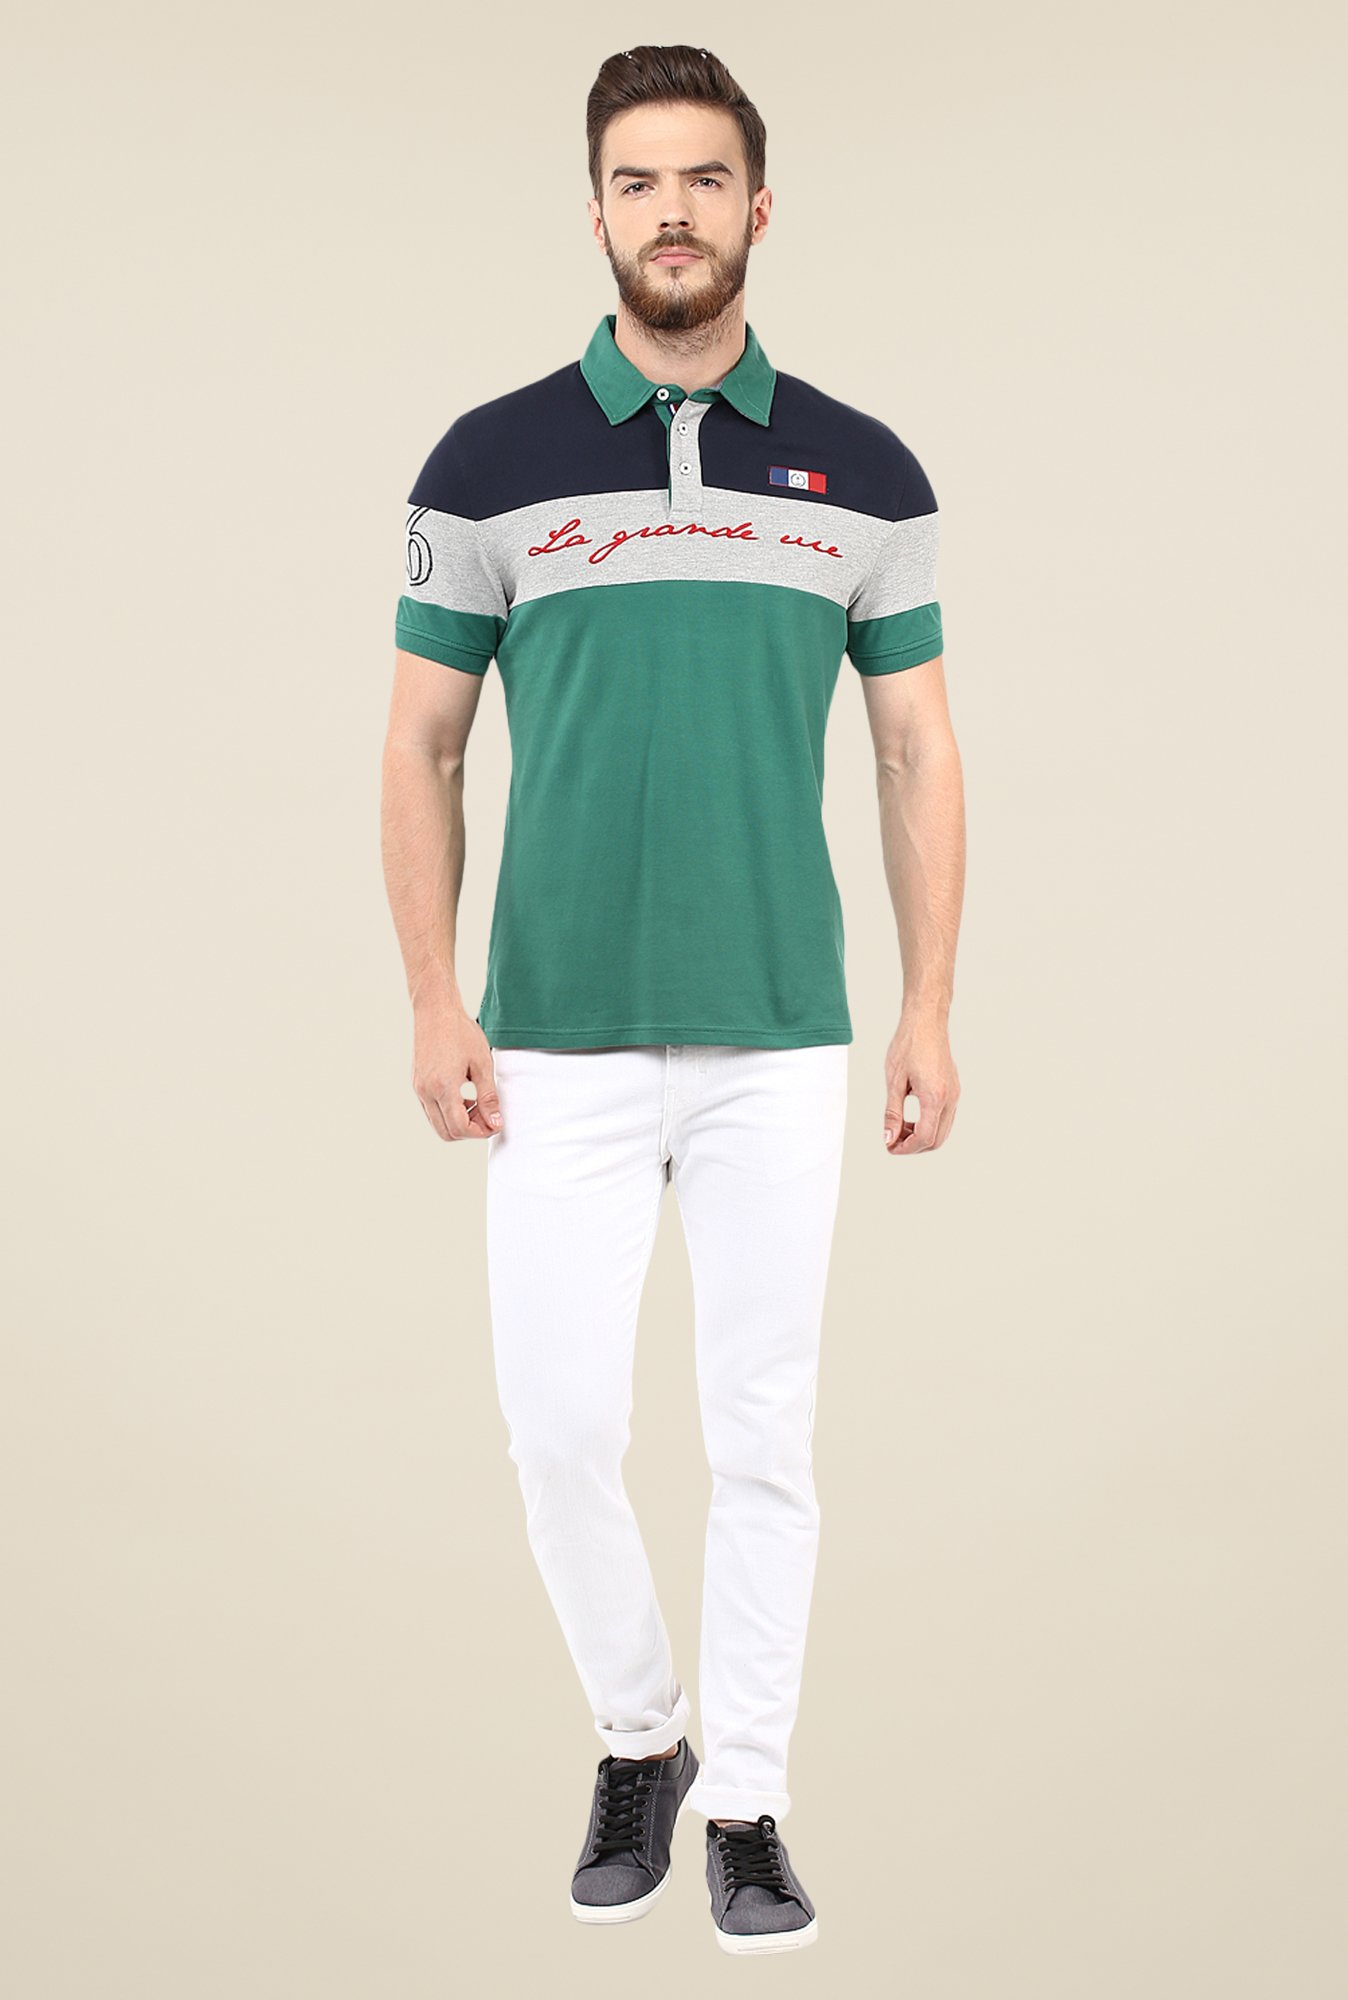 celio* Teal Solid Polo T Shirt